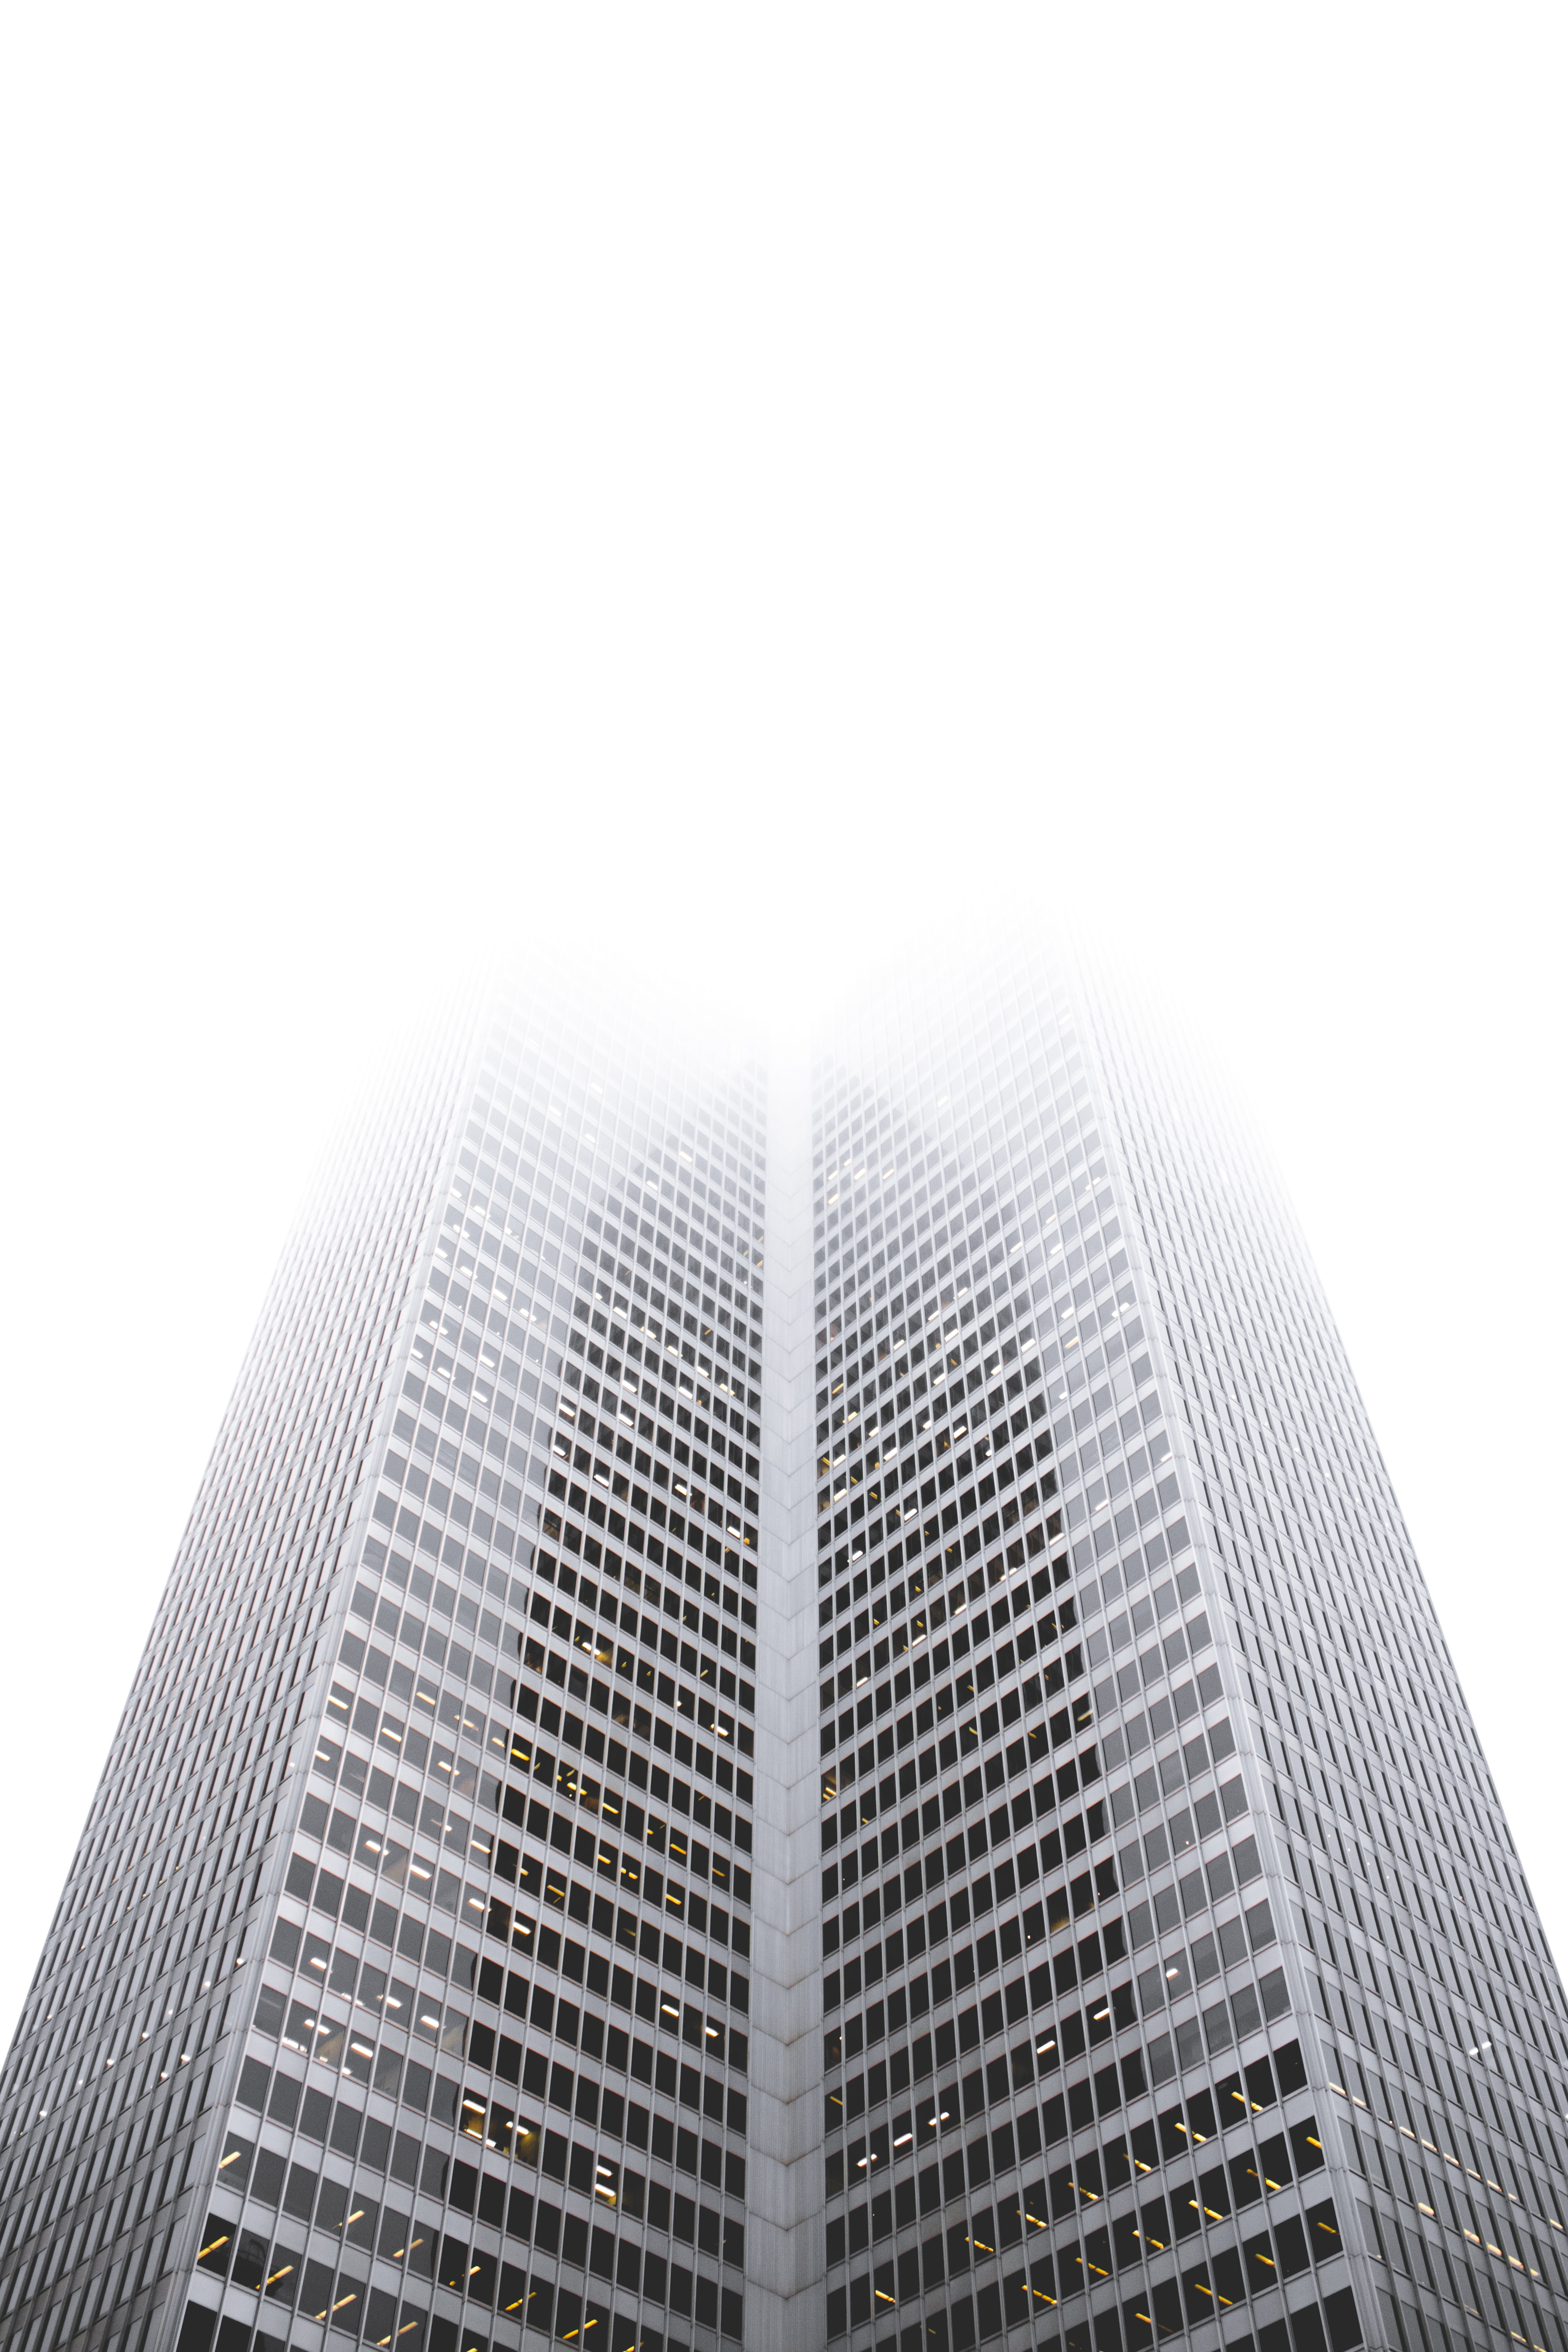 low angle view of high-rise building